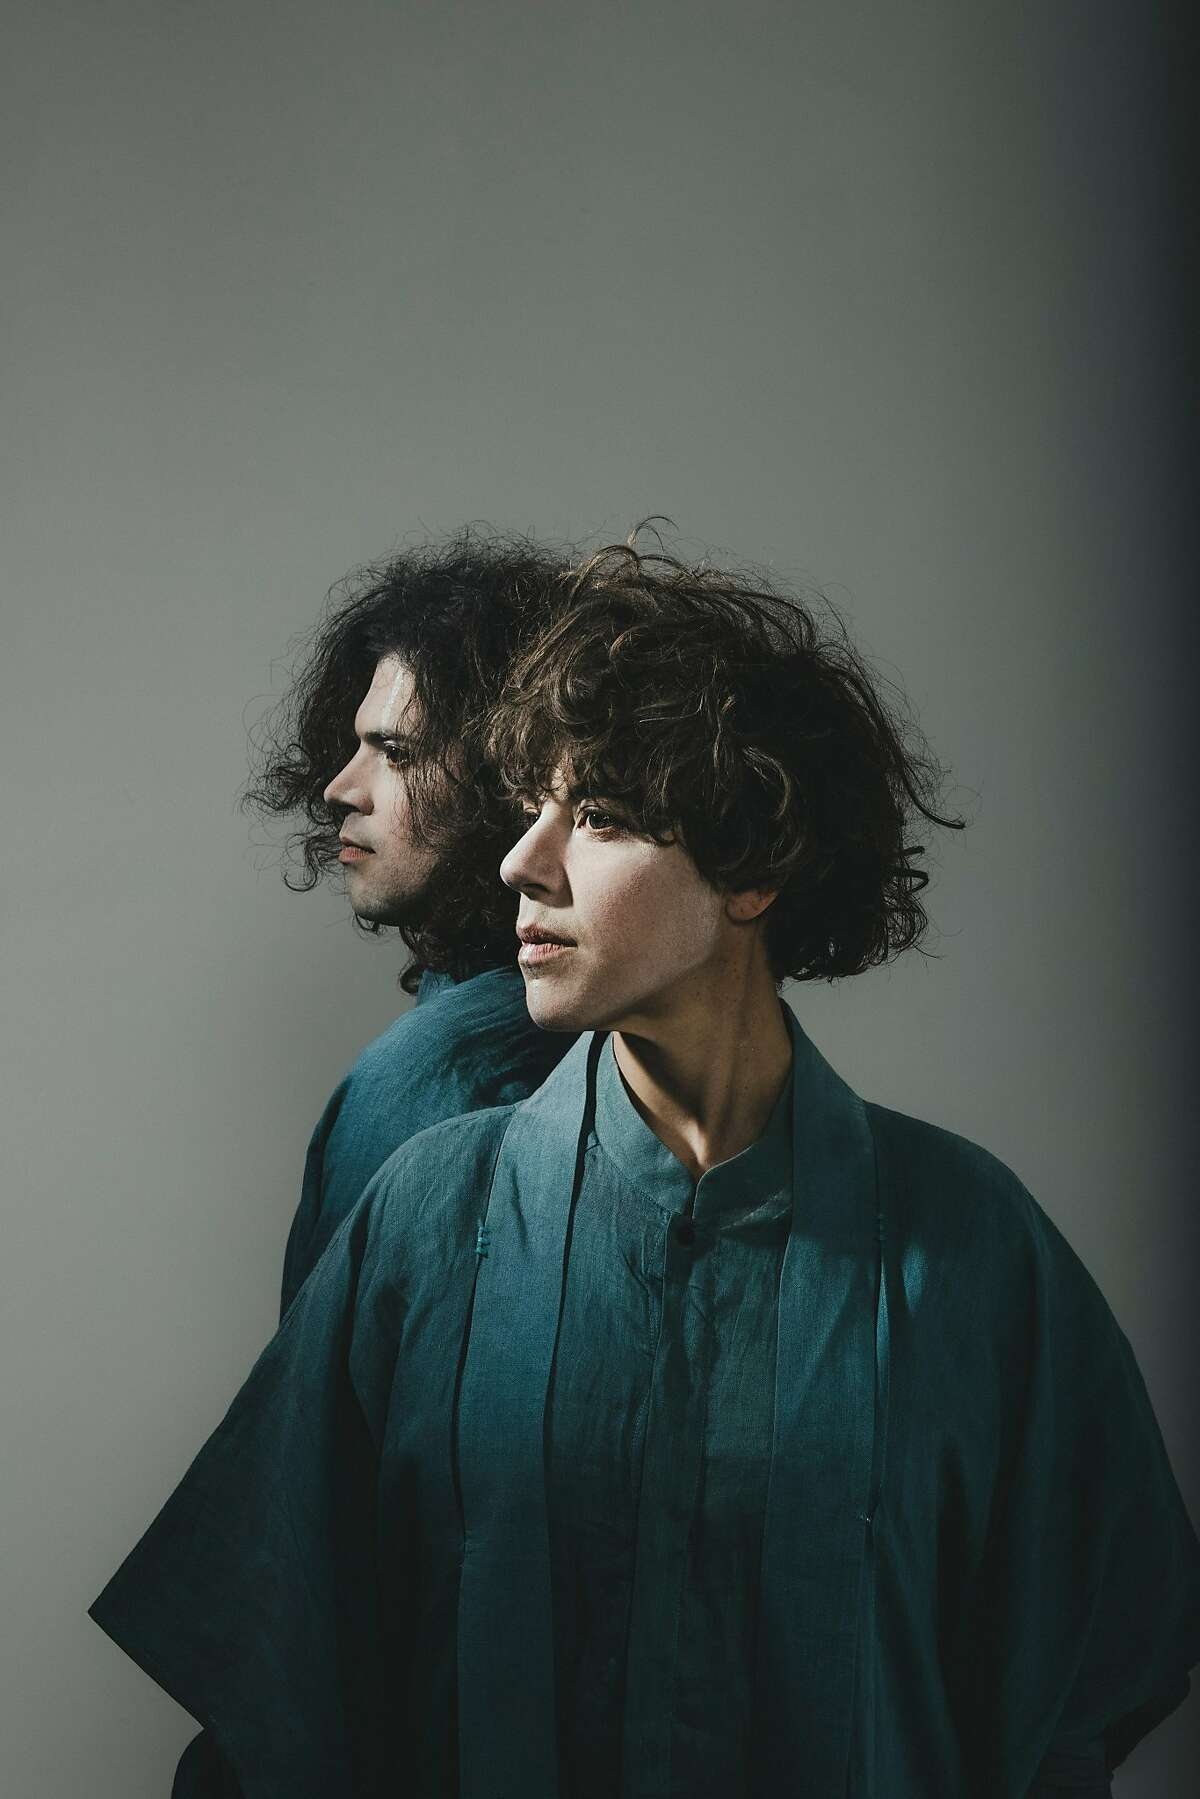 Merrill Garbus and Nate Brenner of Tune-Yards.